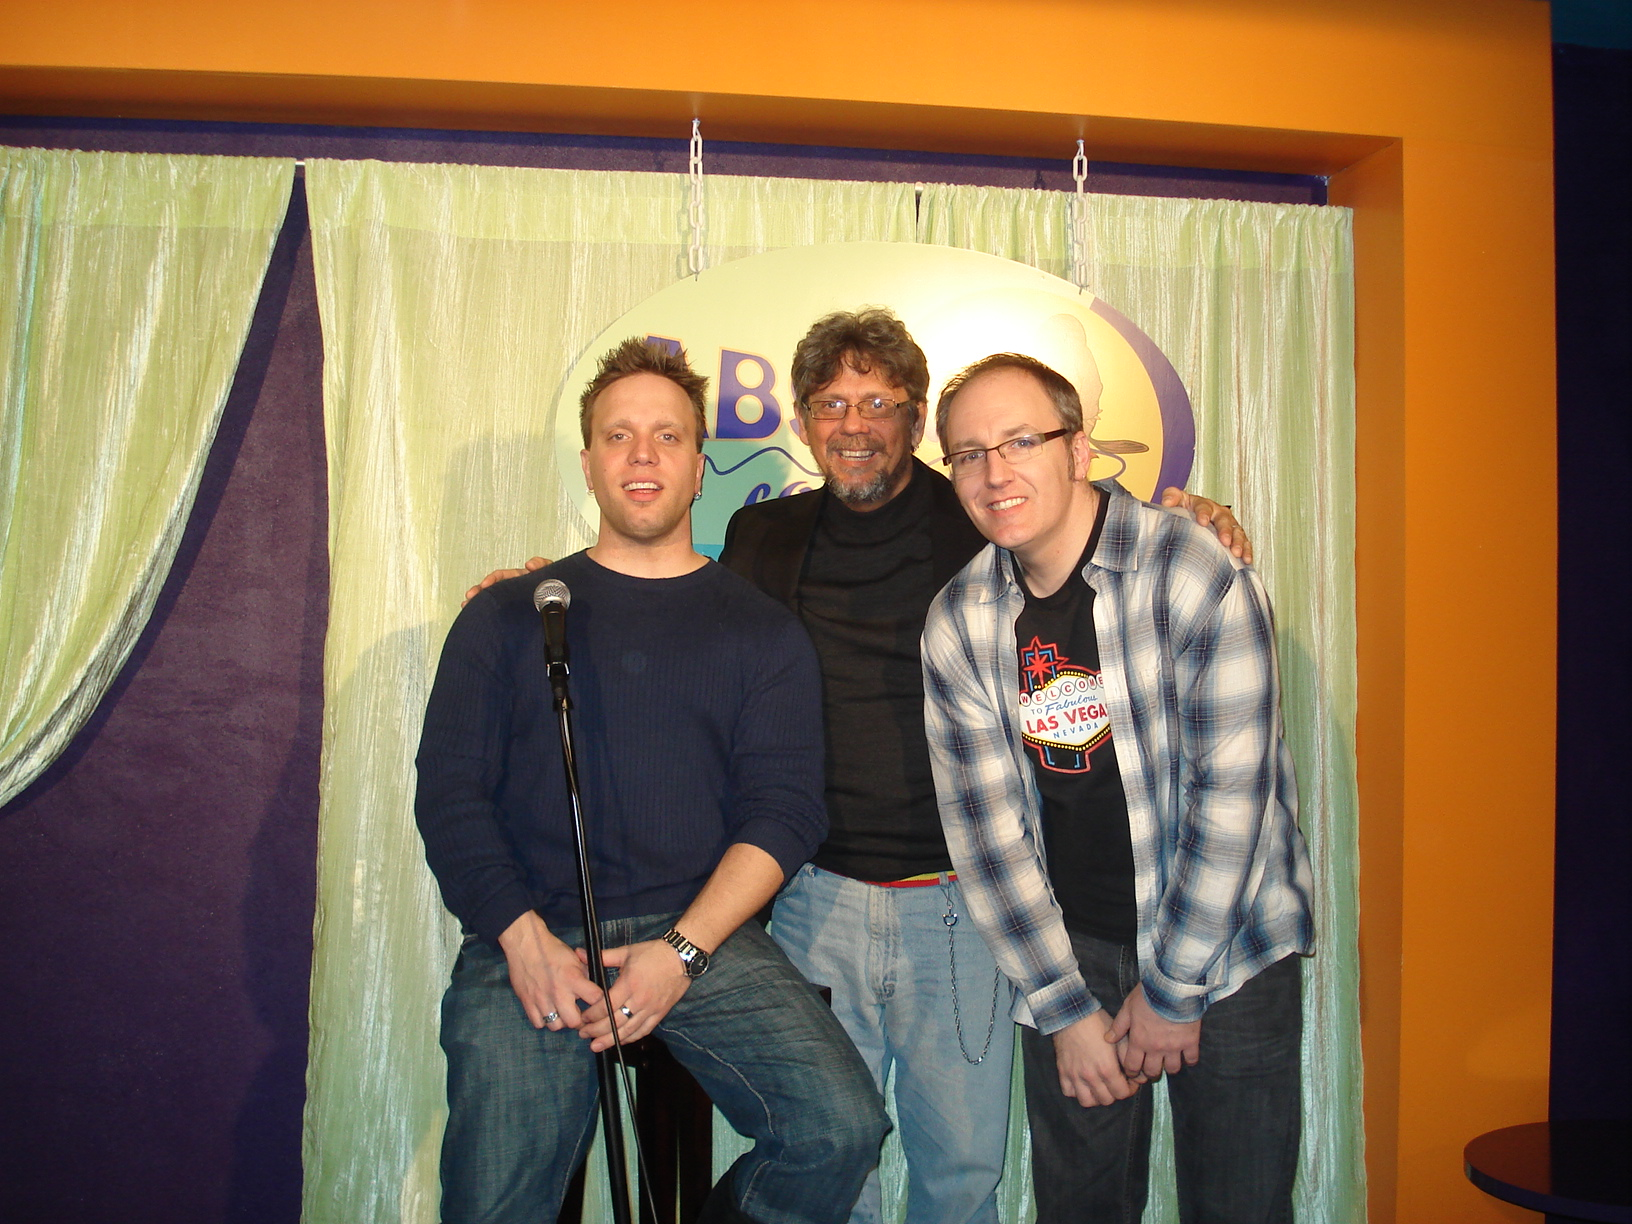 Me, Ward Anderson, and JP Bonnet - Absolute Comedy Toronto - 2008